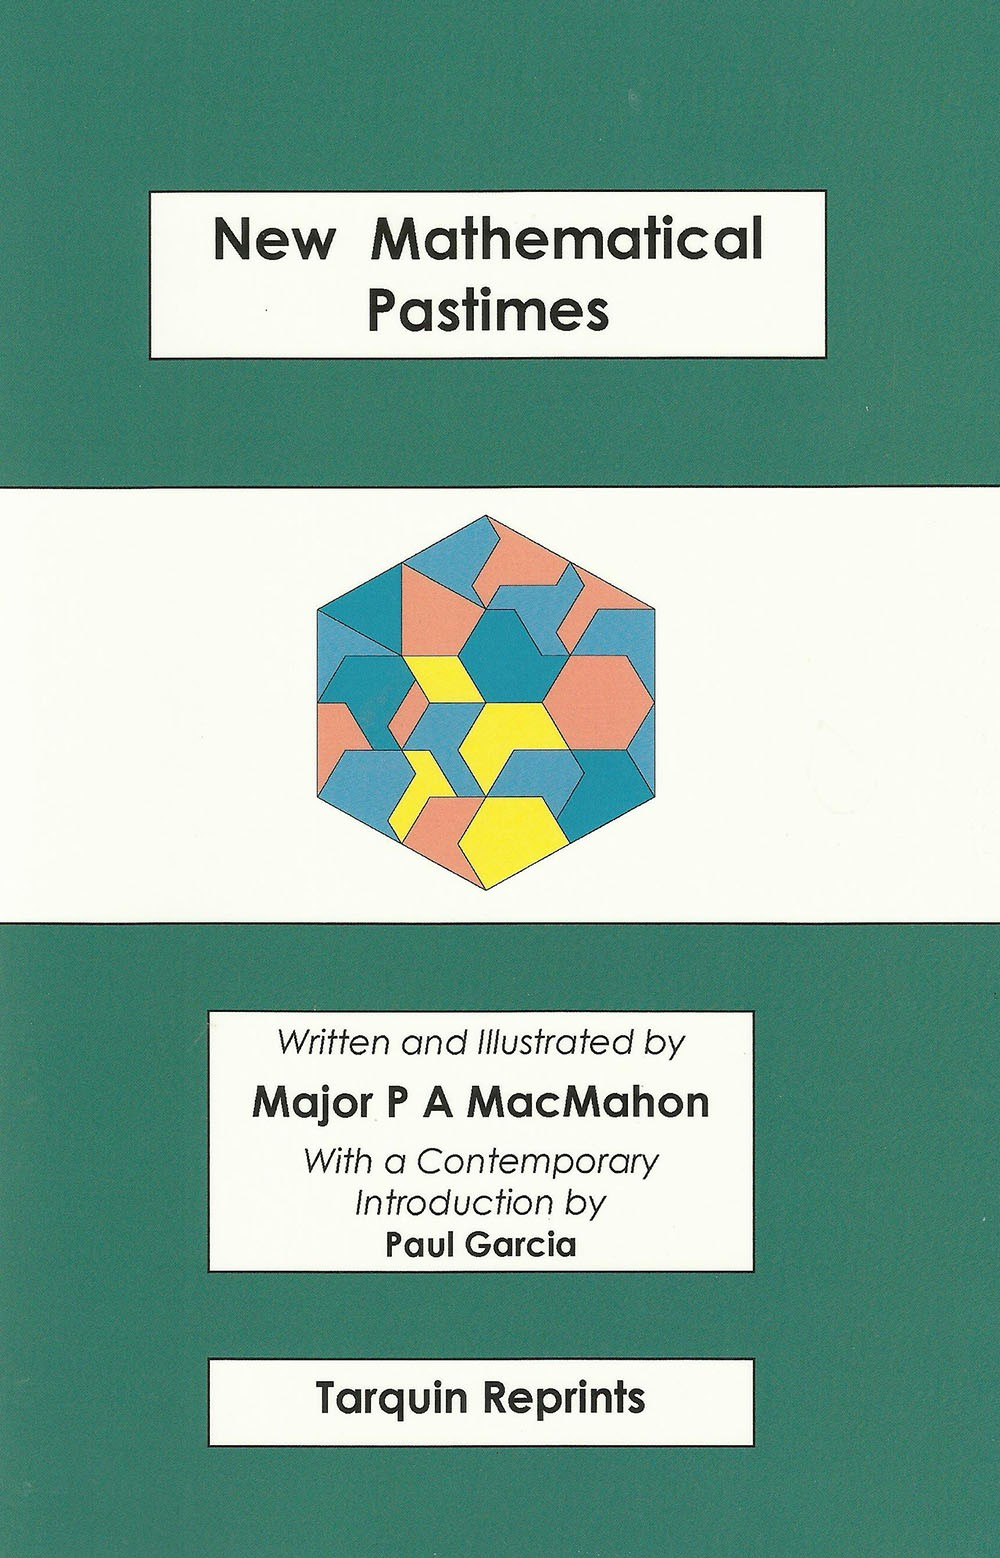 New Mathematical Pastimes